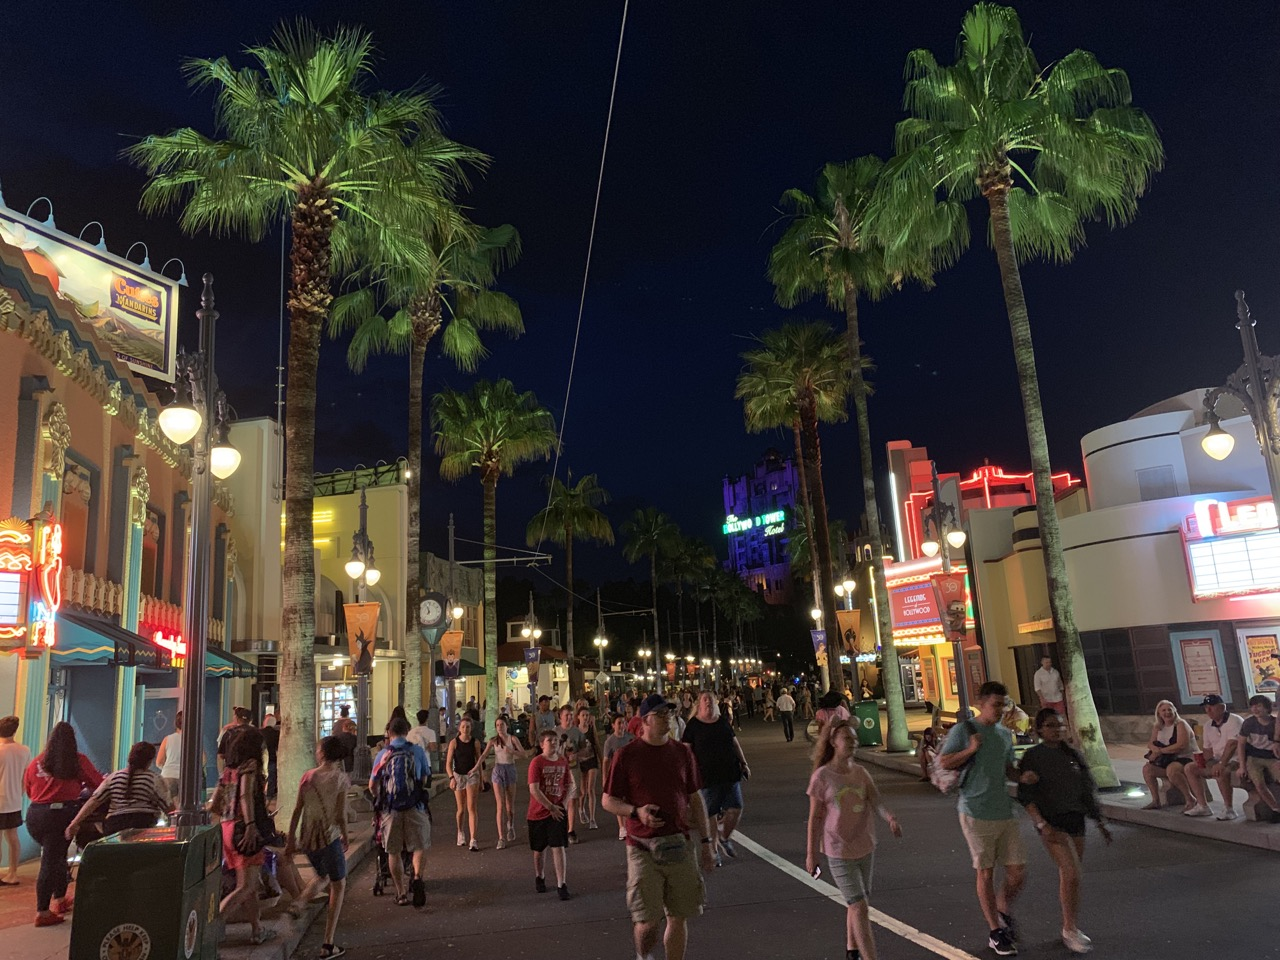 disney world trip report early summer 2019 day two 63 sunset boulevard.jpeg